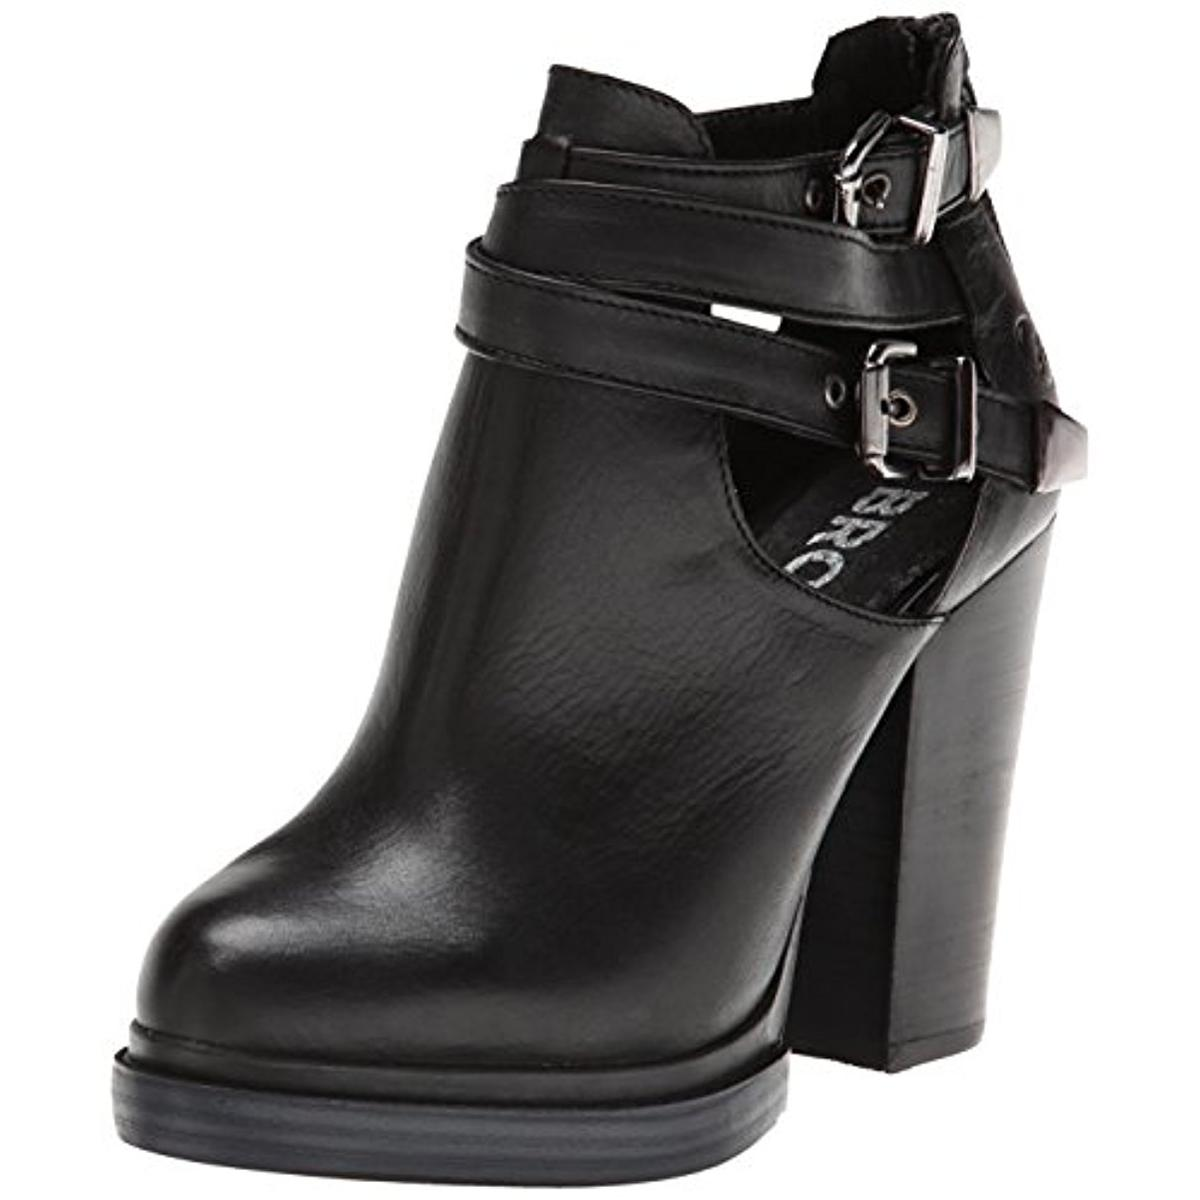 Bronx Womens Cherry Top Leather Cut-Out Motorcycle Boots by Bronx